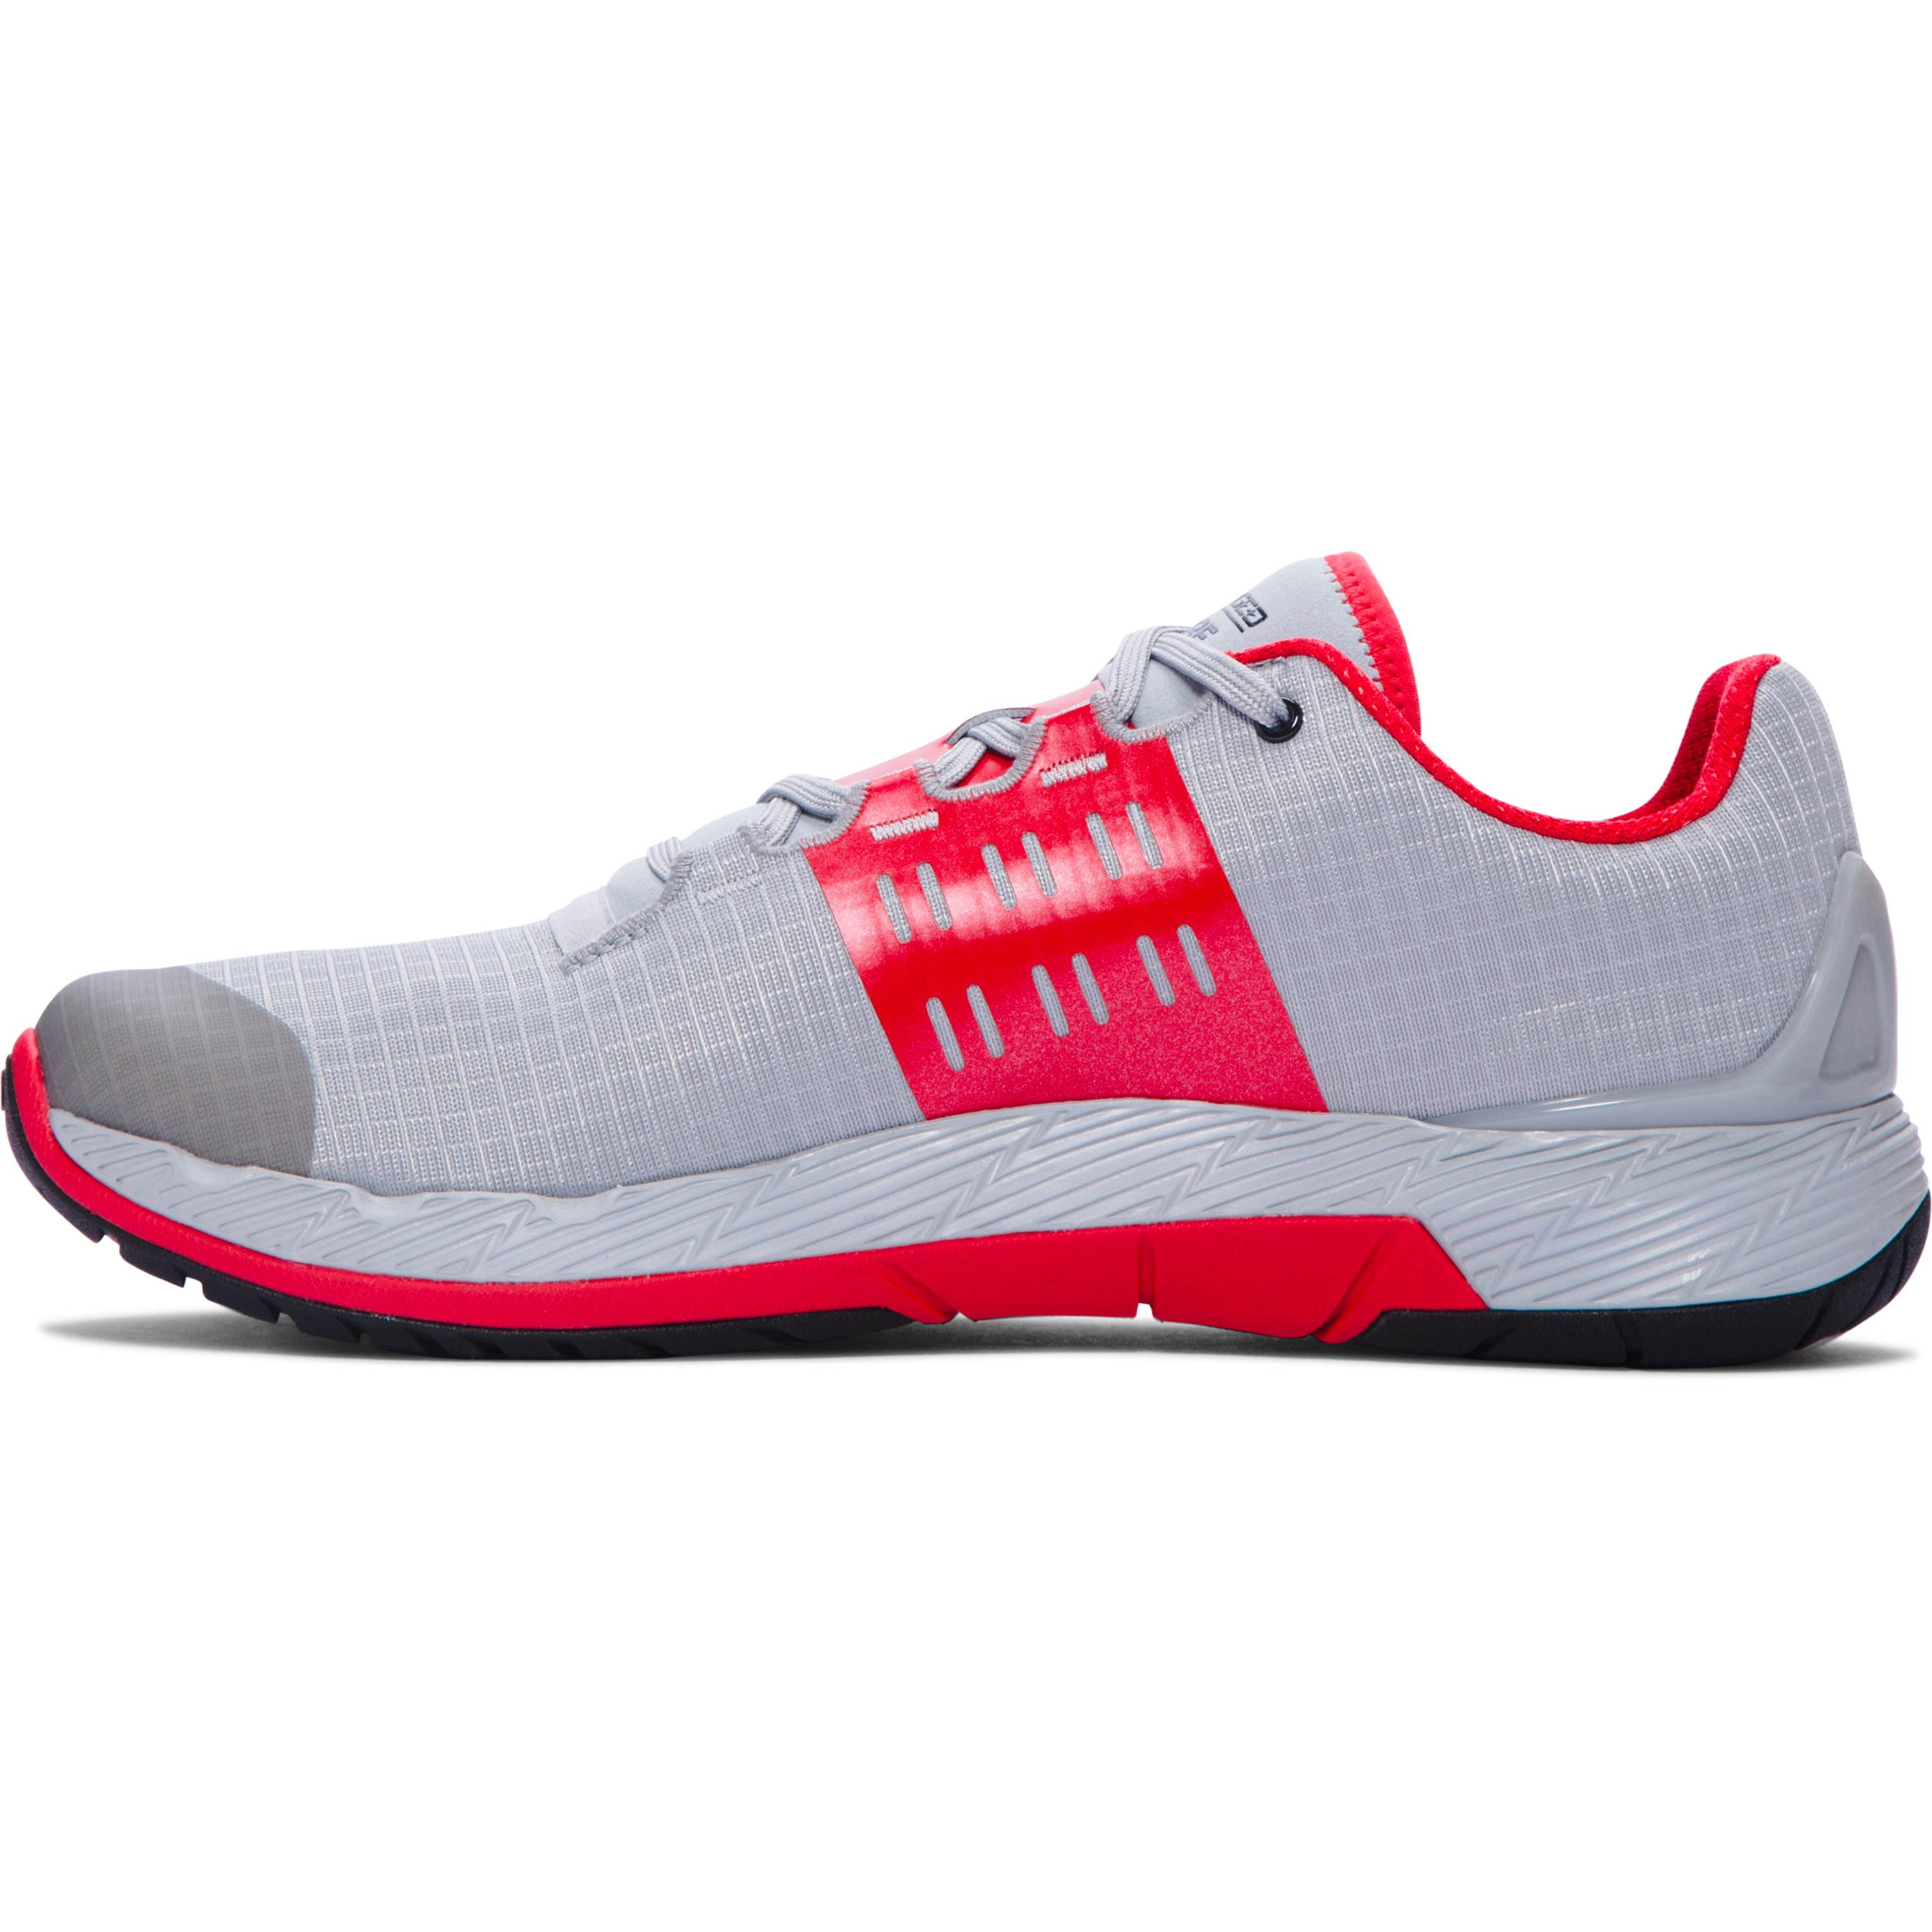 Under Armour Men S Ua Charged Core Training Shoes